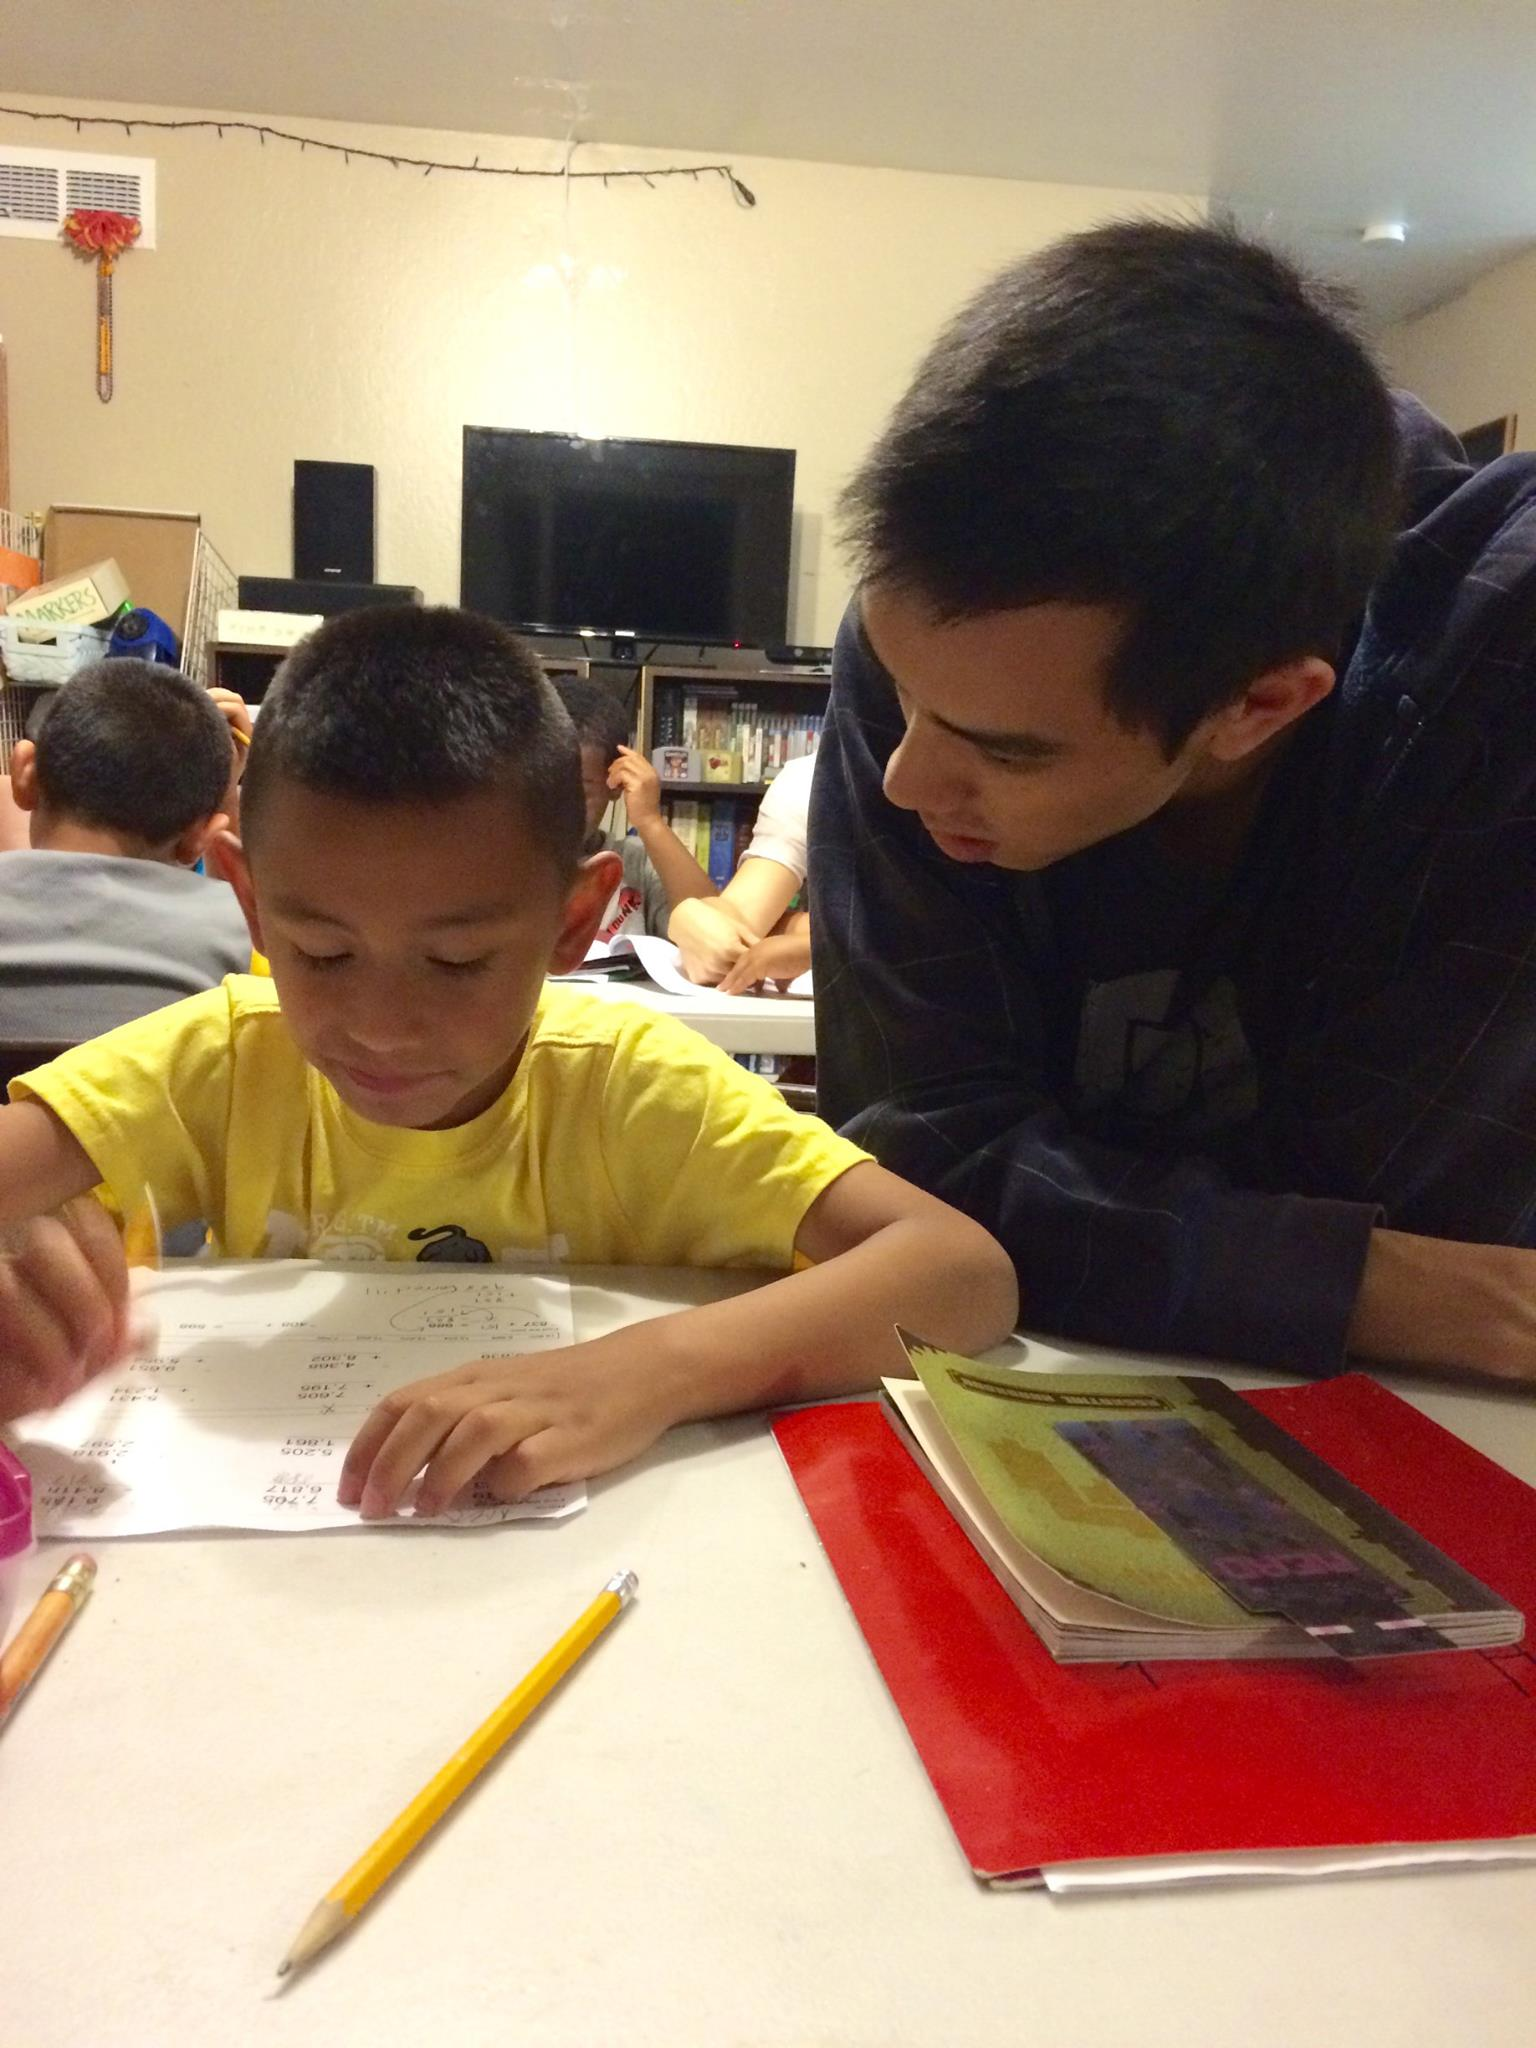 A young boy receives homework help from volunteer, Jordan, during bible club plus.